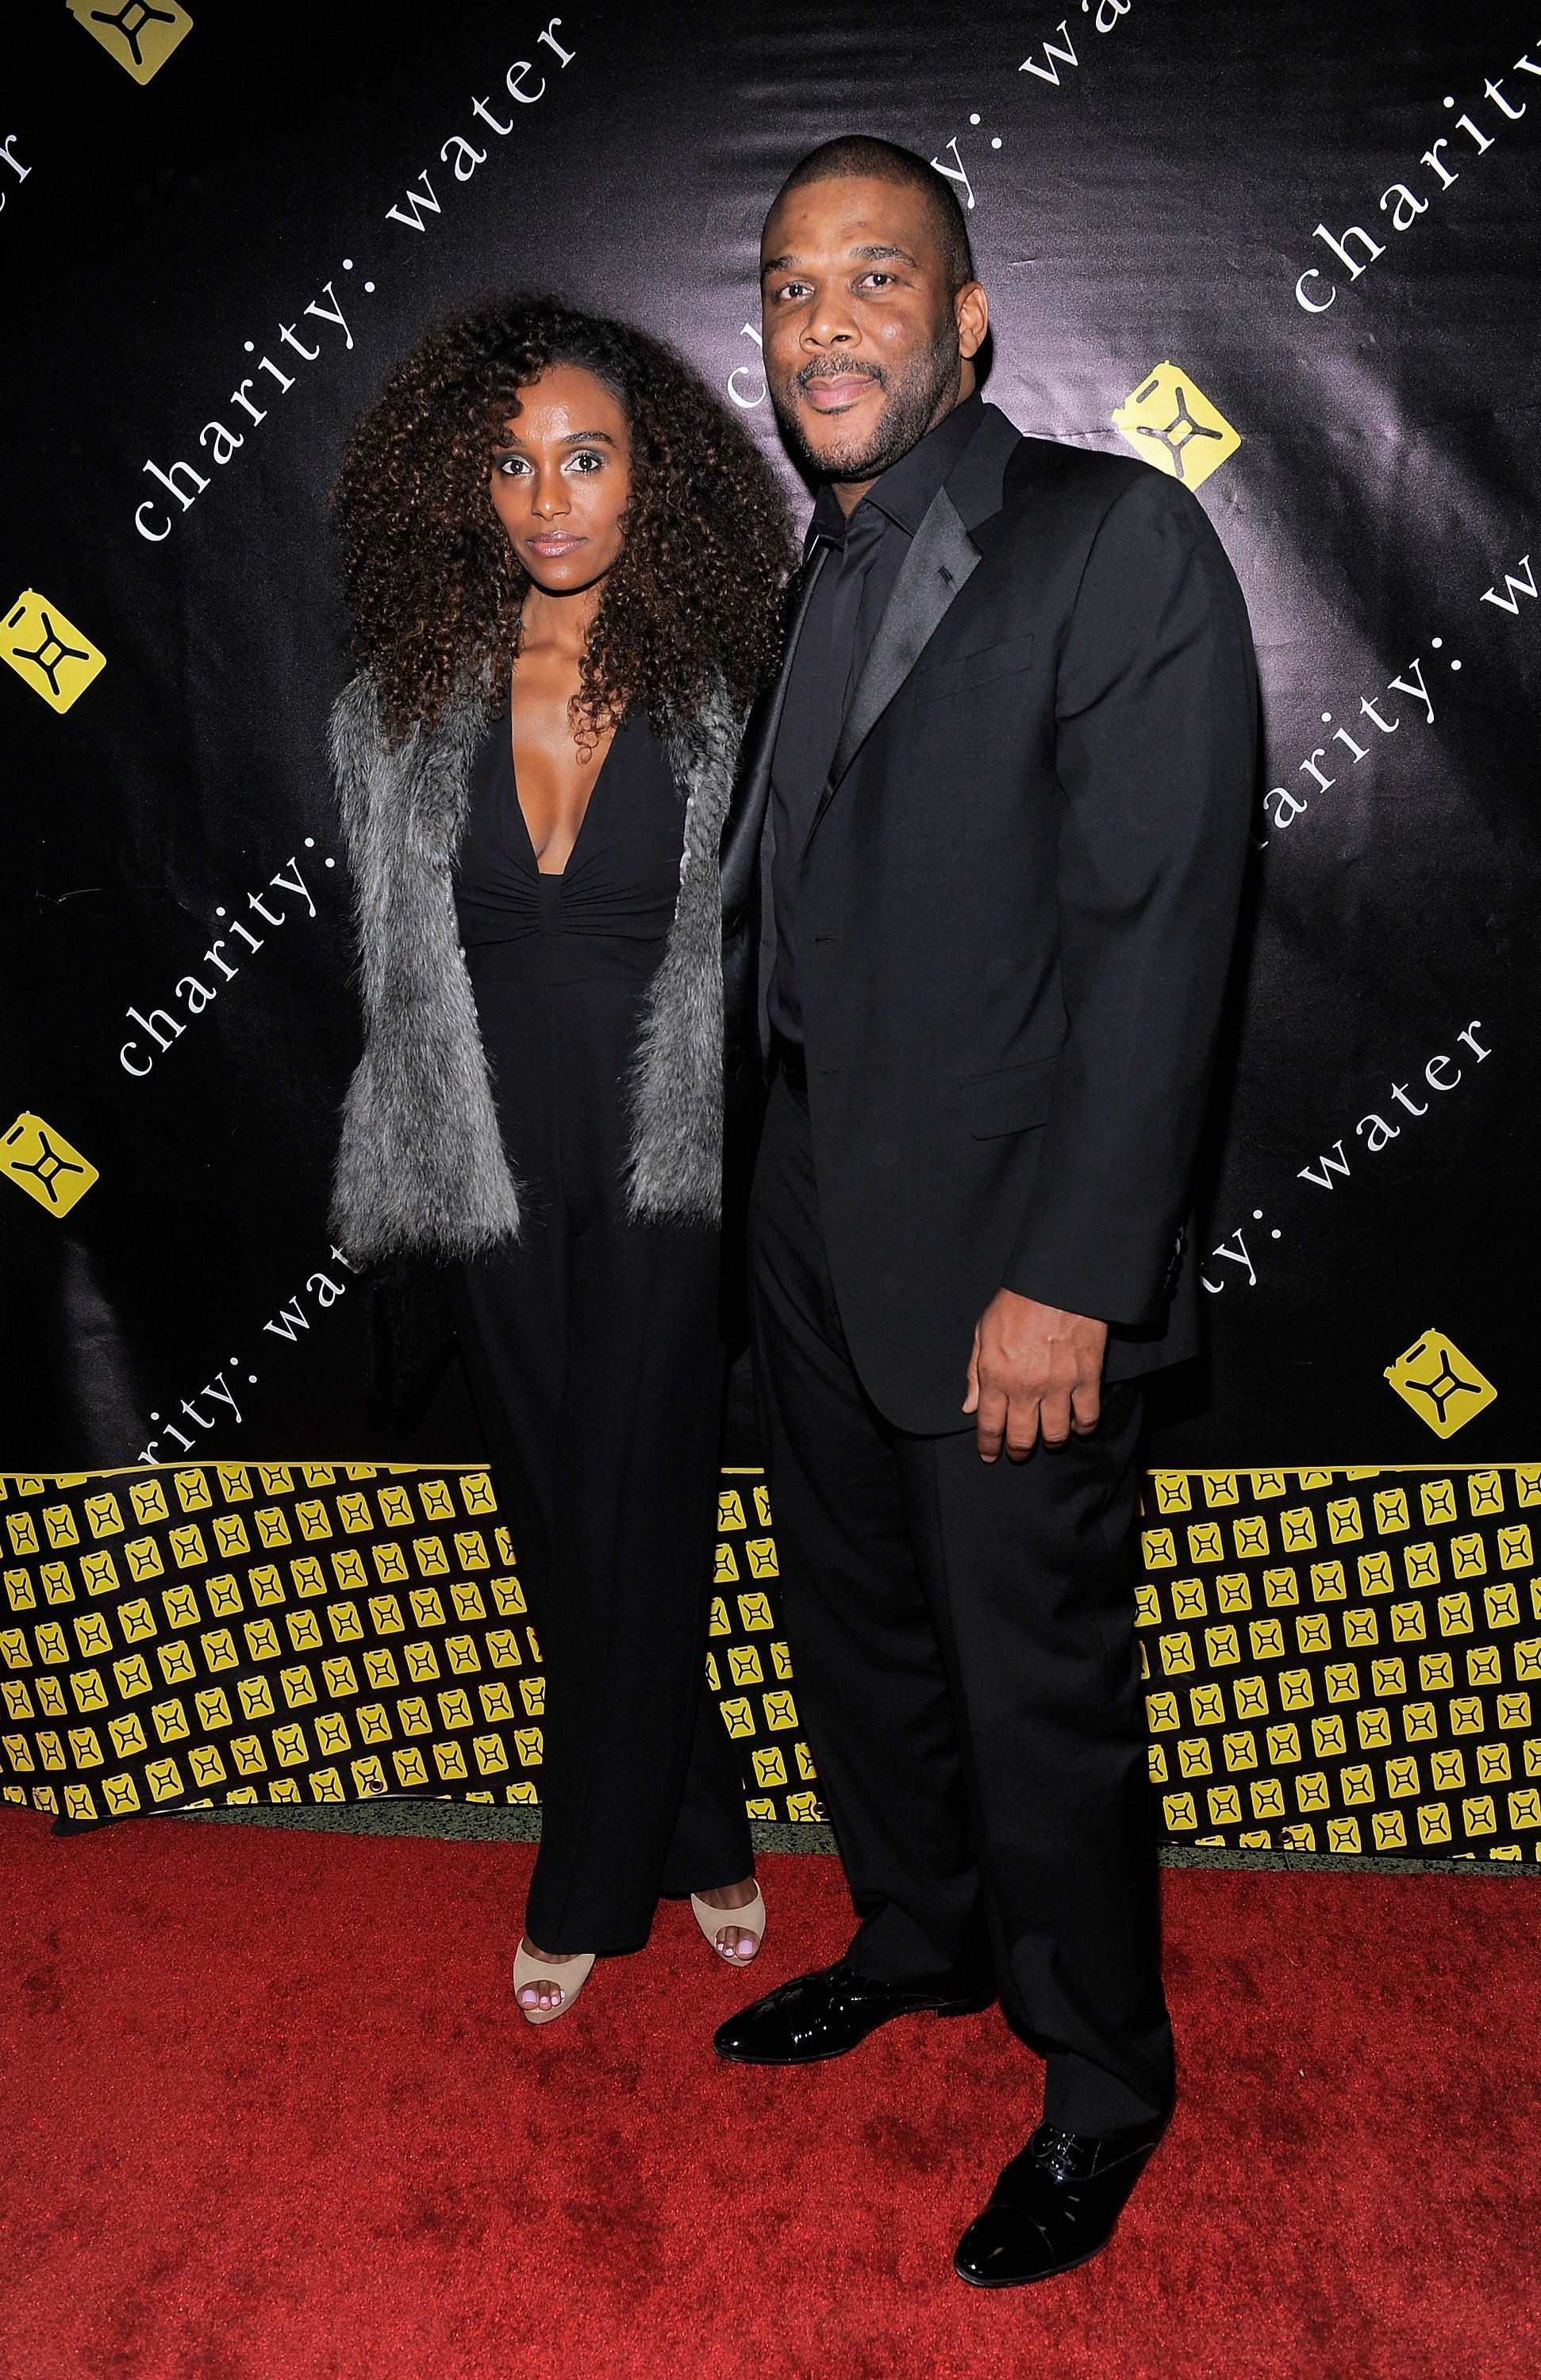 Gelila Bekele and Tyler Perry pose at the 6th Annual Charity: Ball on December 12, 2011 l Source: Getty Images